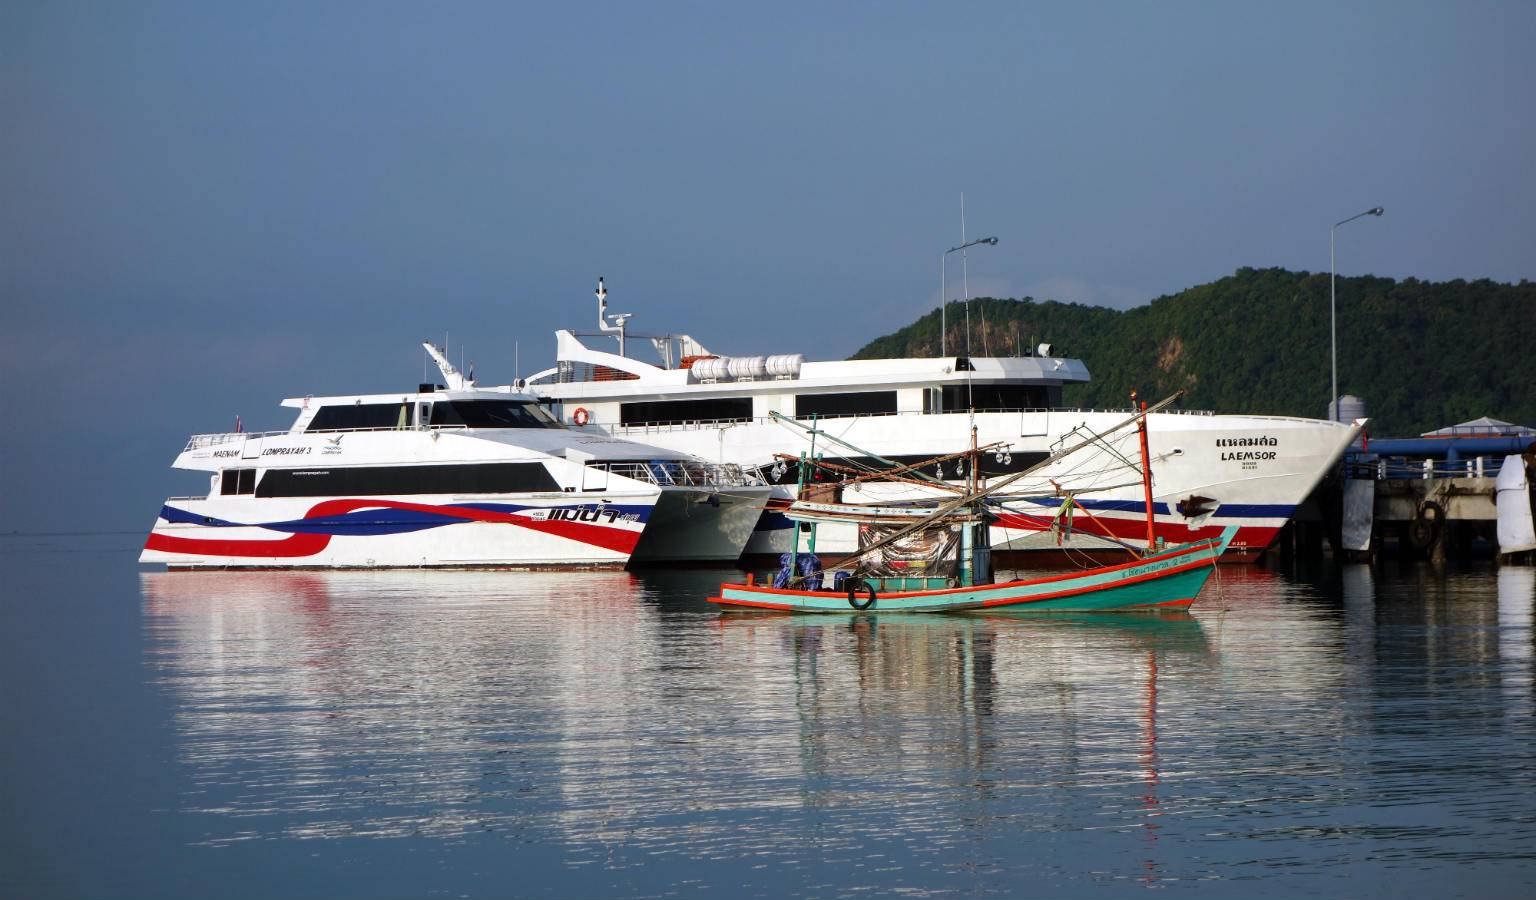 Ferries docked at Thong Sala pier on Koh Phangan, Thailand